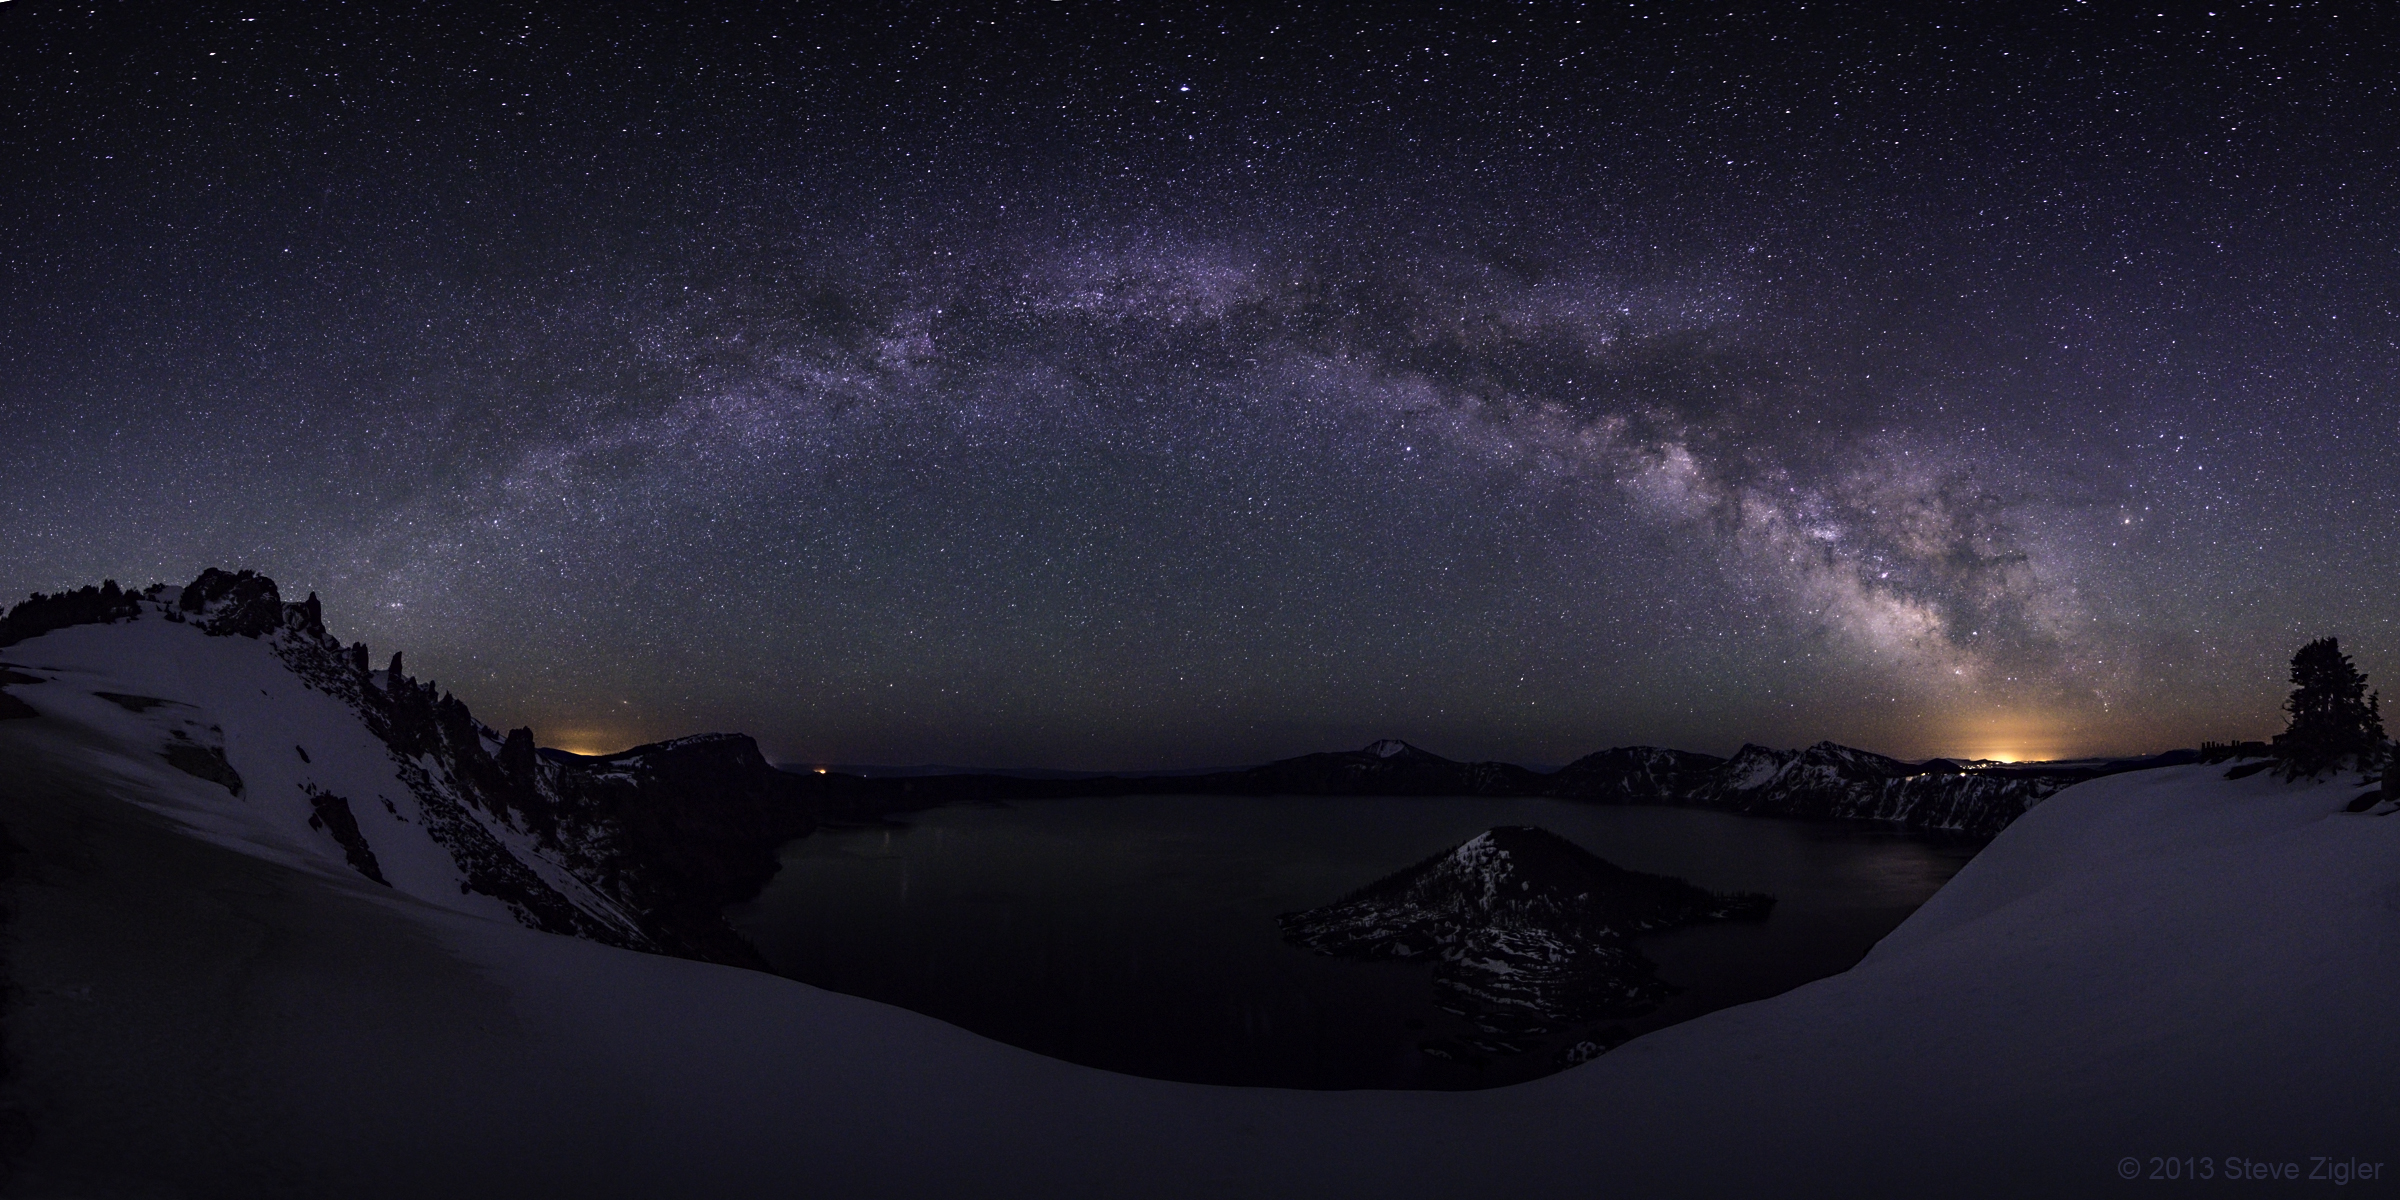 Milky Way Shines Over Crater Lake in Stunning Panorama